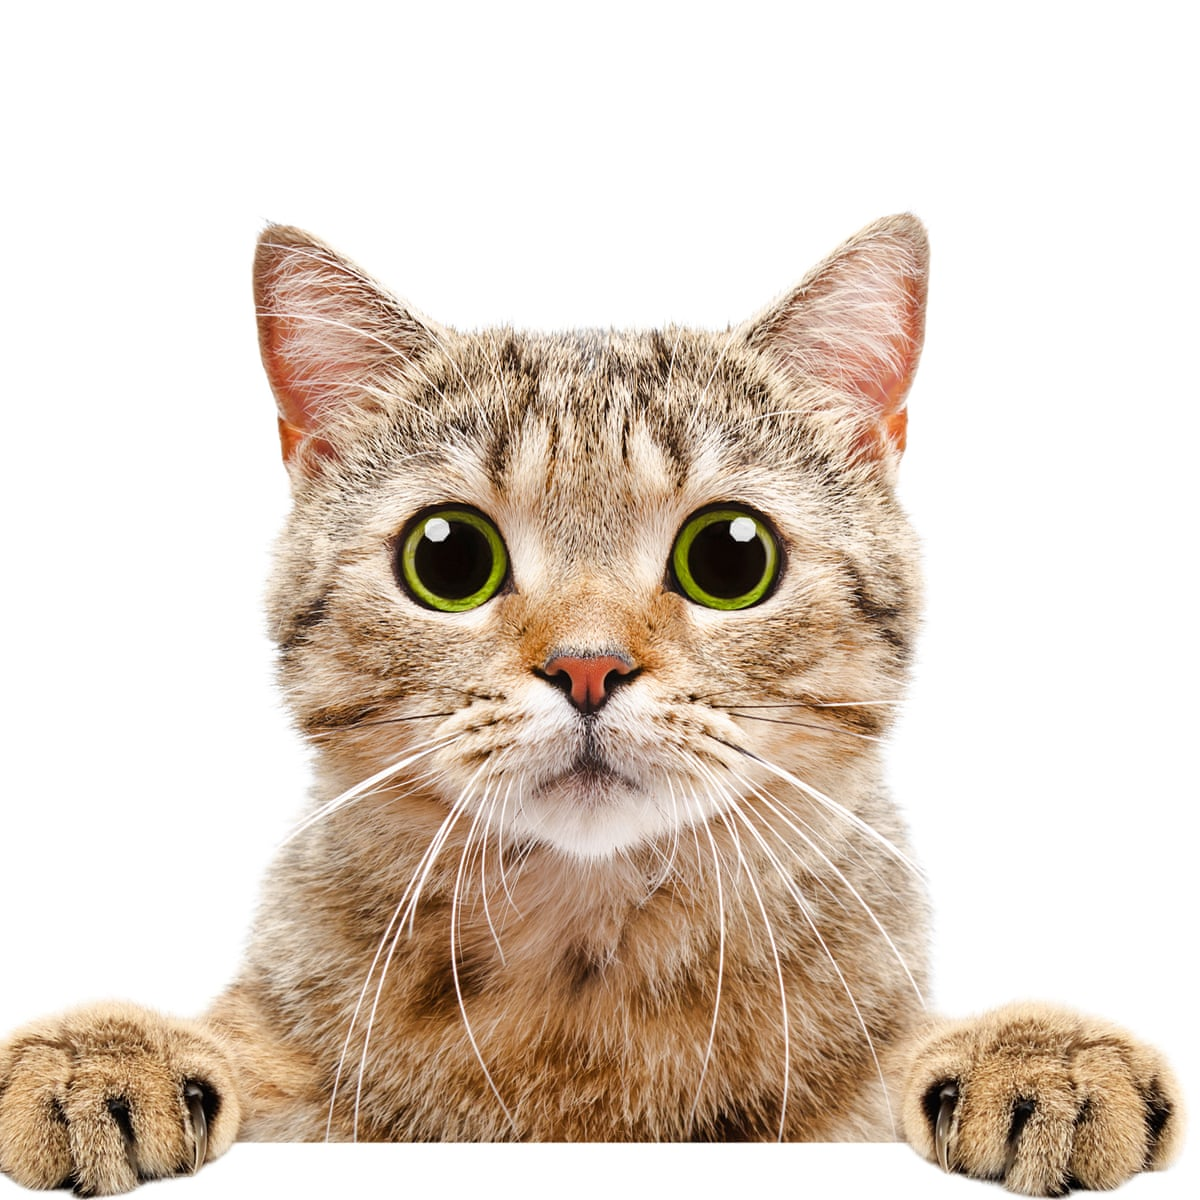 Download Adorable Cat Pictures Photos Images MdBsPiolC